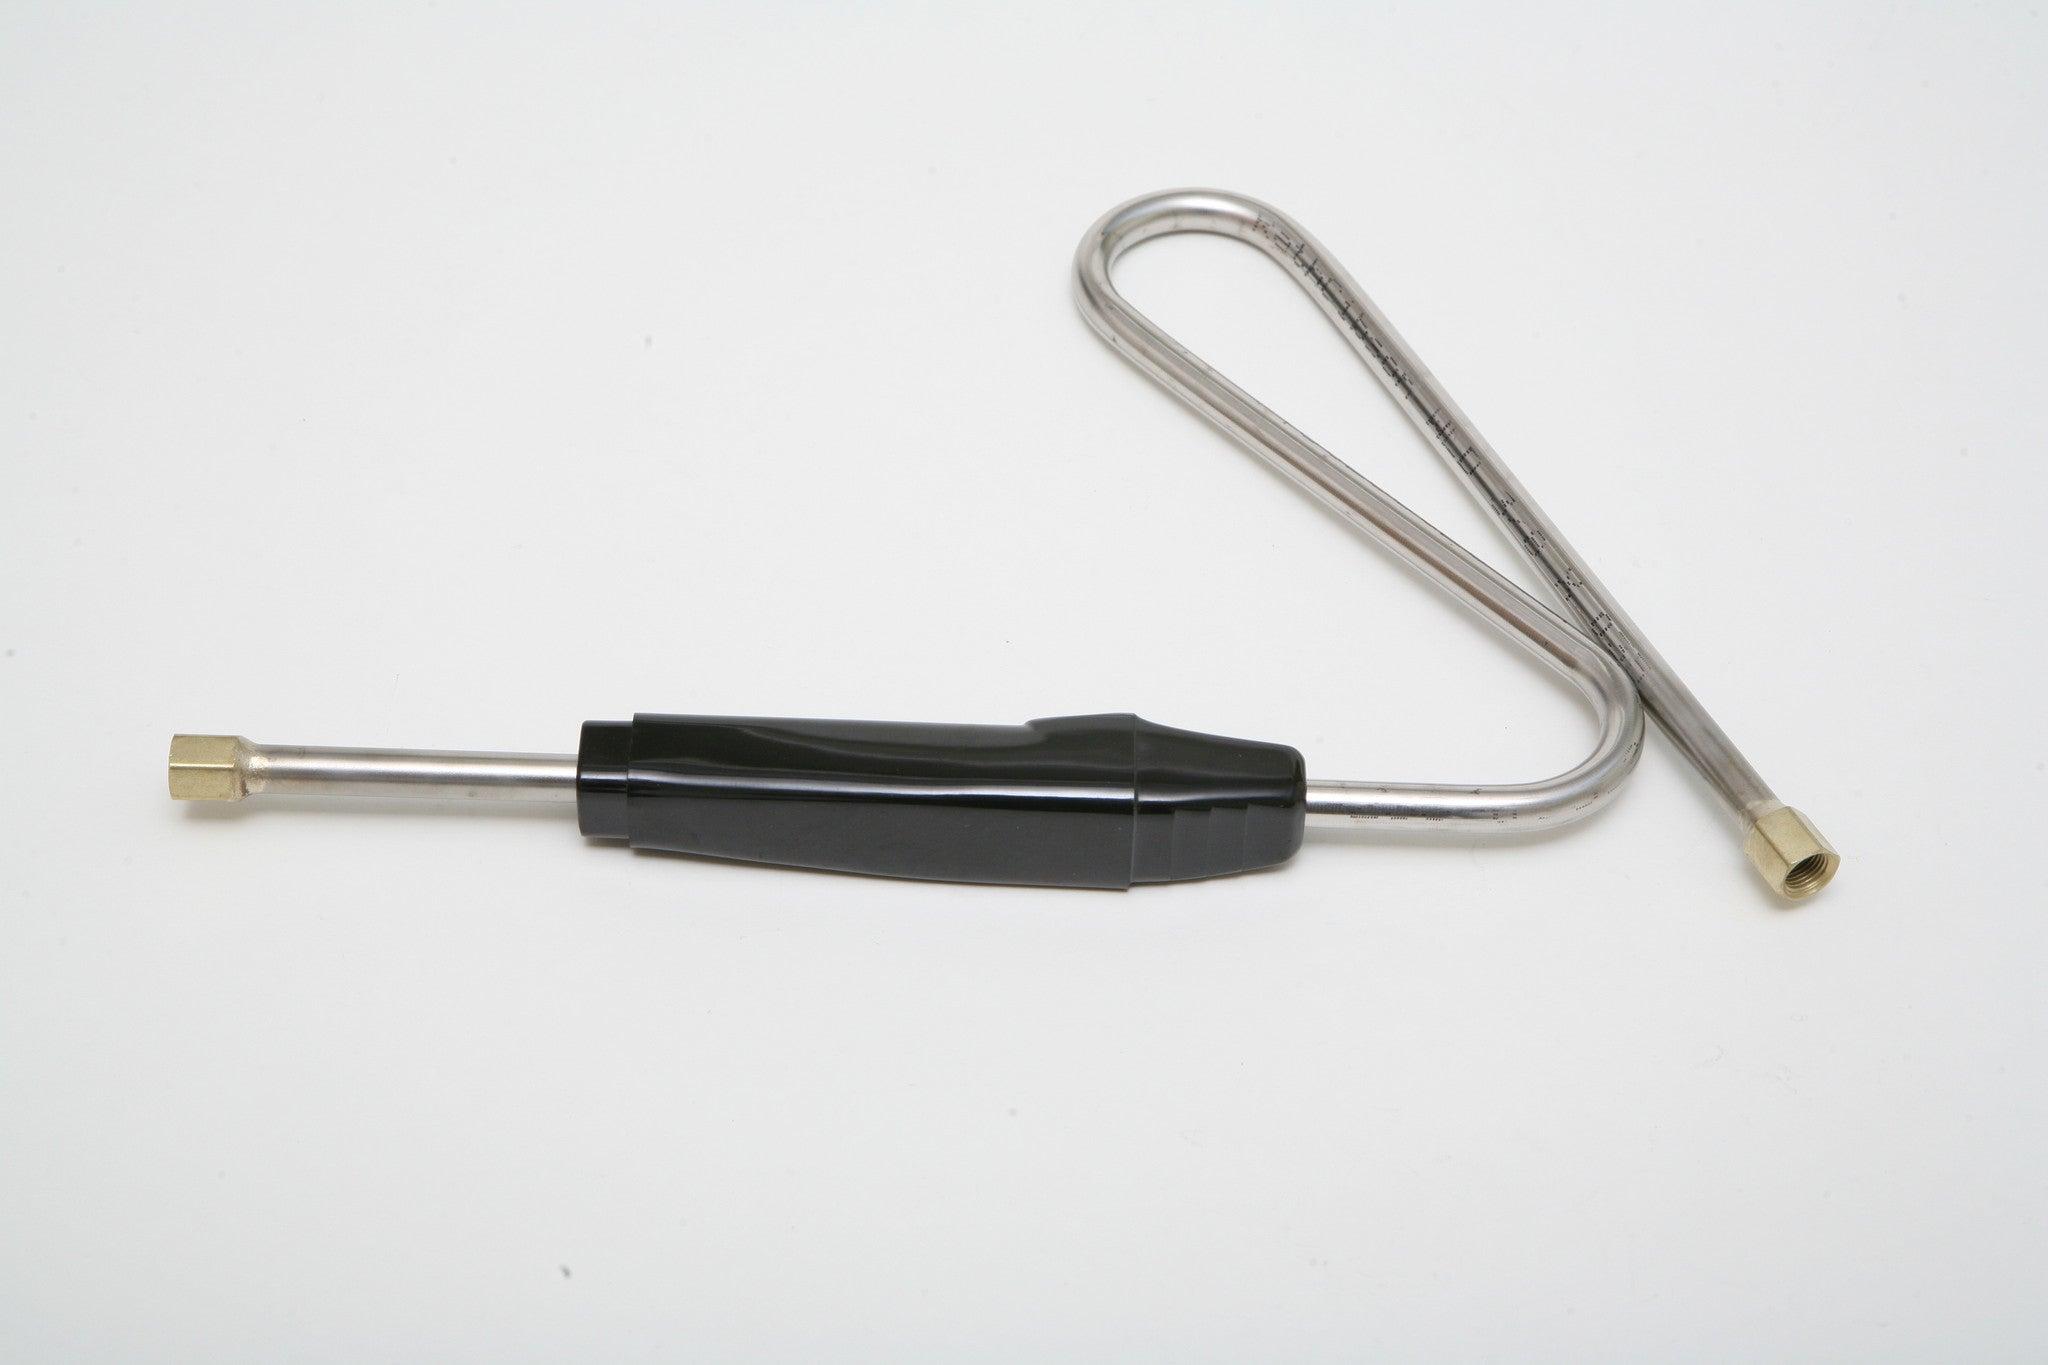 SPX HEAVY DUTY PROBE HANDLE